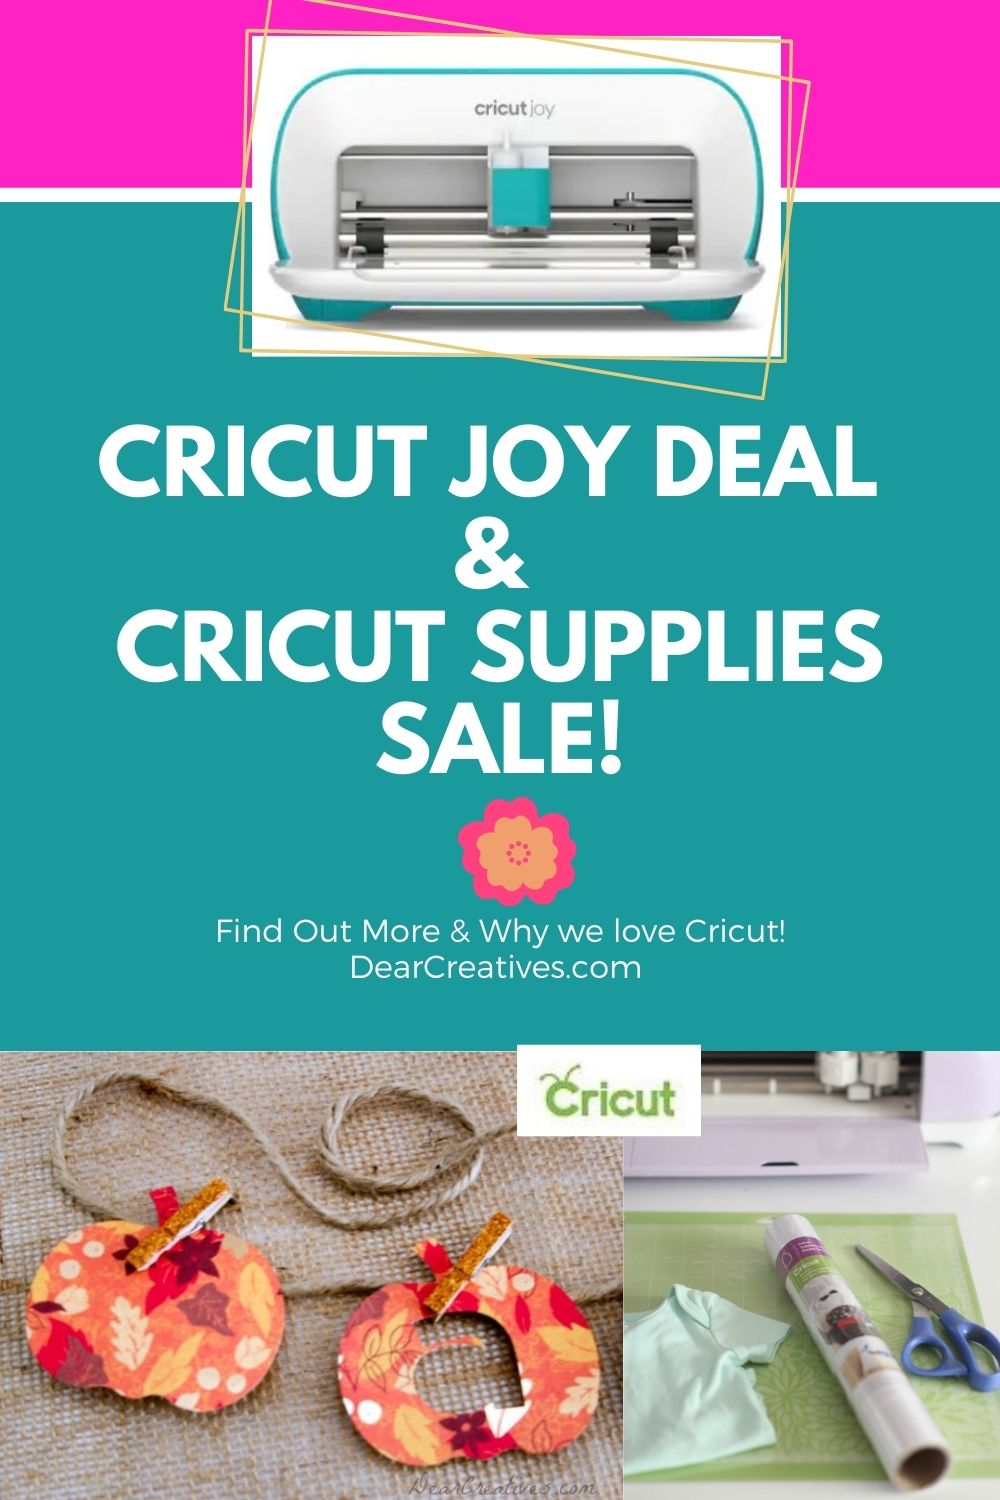 Cricut Deals, Cricut Joy, Cricut Maker, And Supplies On Sale!